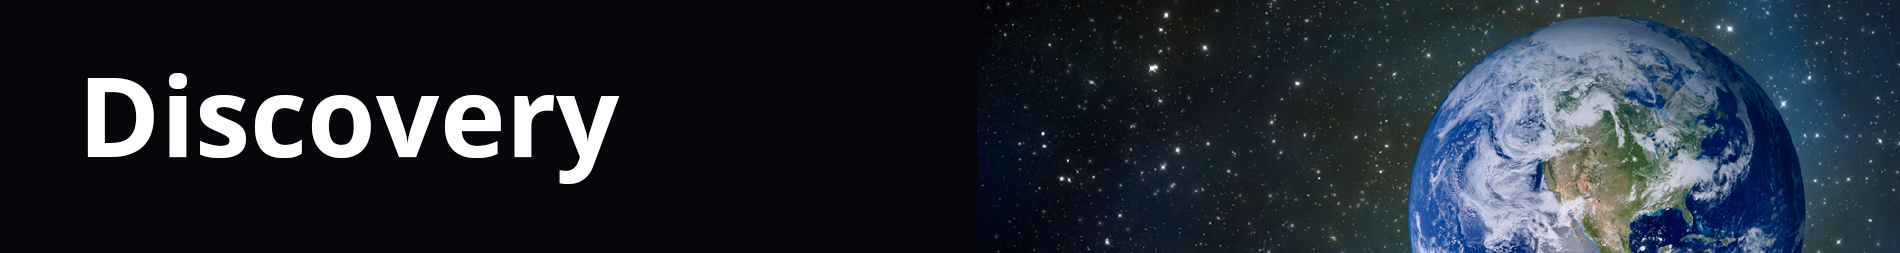 discovery-banner.png